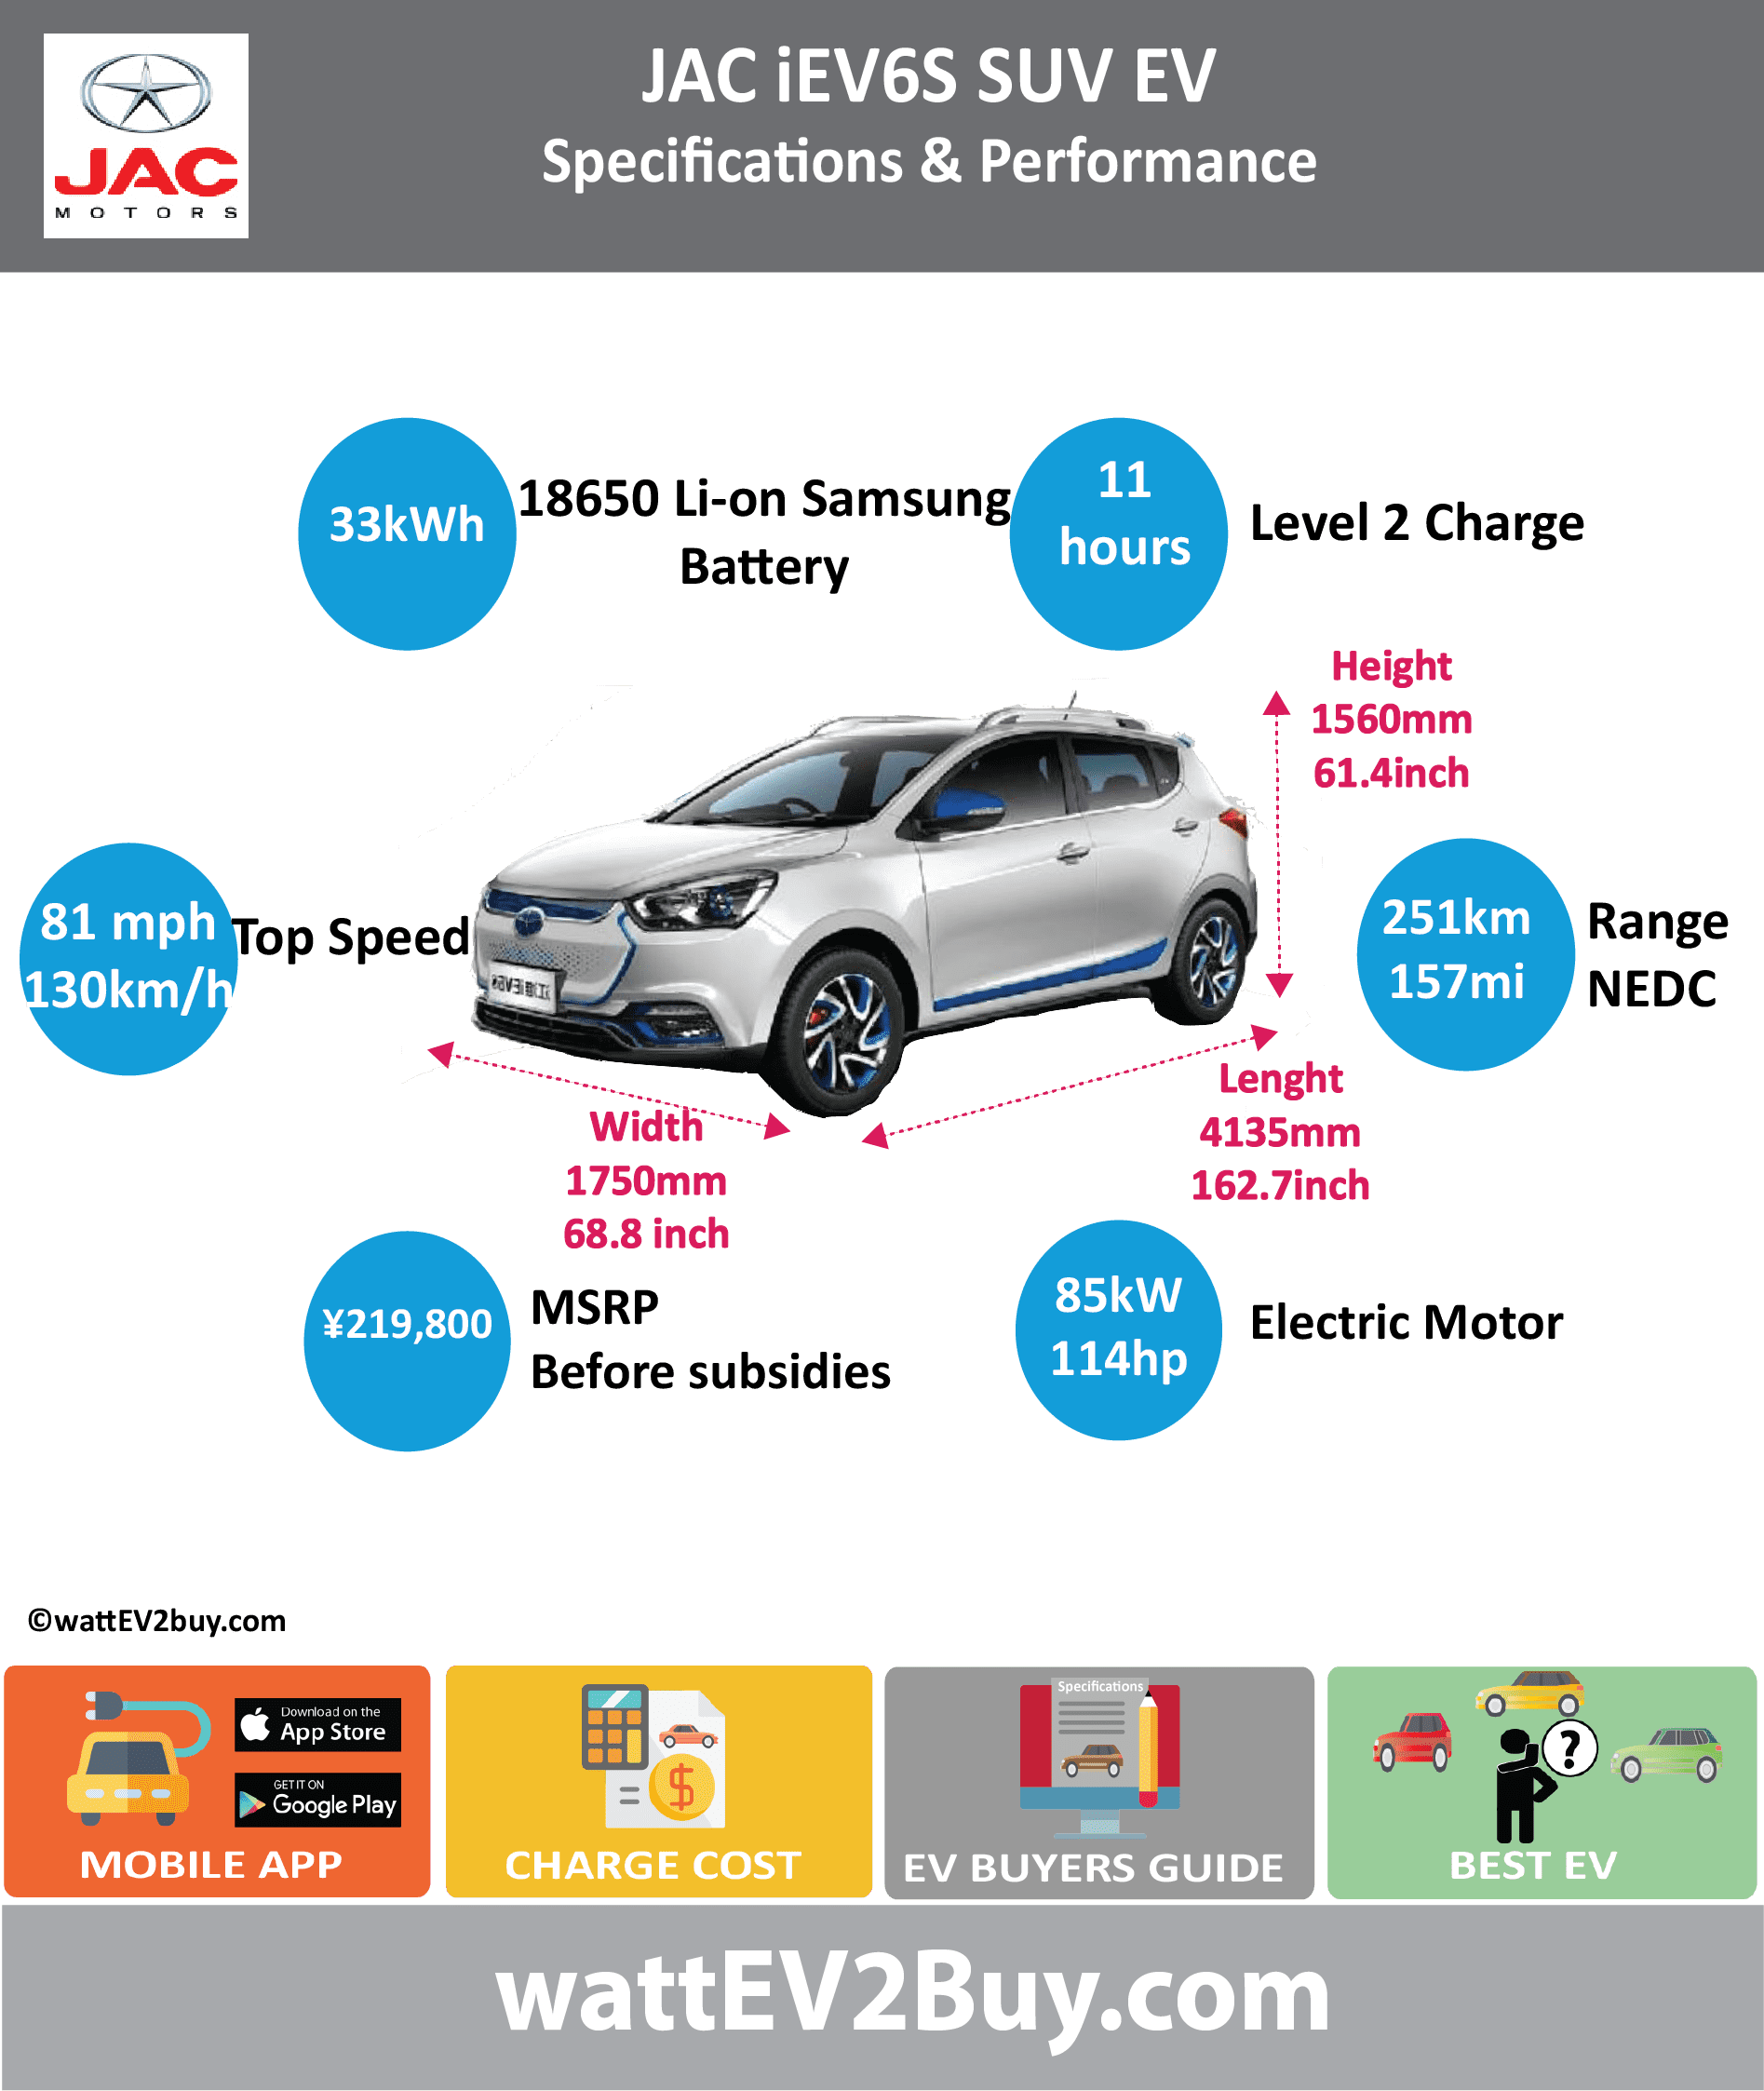 JAC iEV6S SUV EV	specs wattev2Buy.com	2016 Battery Chemistry	18650 Li-on Battery Capacity kWh	33 Battery Nominal rating kWh	 Voltage V	 Amps Ah	86.4 Cells	3000 Modules	 Weight (kg)	 Cell Type	 Cooling	Liquid Battery Type	Perm Mag Syncro Cycles	 Depth of Discharge (DOD)	 Energy Density Wh/kg	 Battery Manufacturer	Samsung Battery Warranty - years	 Battery Warranty - km	 Battery Electric Range - at constant 38mph	188 Battery Electric Range - at constant 60km/h	300 Battery Electric Range - NEDC Mi	158 Battery Electric Range - NEDC km	253 Electric Top Speed - mph	81 Electric Top Speed - km/h	130 Acceleration 0 - 100km/h sec	11 Acceleration 0 - 50km/h sec	3.9 Onboard Charger kW	 LV 1 Charge kW	 LV 1 Charge Time (Hours)	11 LV 2 Charge kW	 LV 2 Charge Time (Hours)	 LV 3 CCS/Combo kW	 LV 3 Charge Time (min to 80%)	60 Charge Connector	 MPGe Combined - miles	 MPGe Combined - km	 MPGe City - miles	 MPGe City - km	 MPGe Highway - miles	 MPGe Highway - km	 Max Power - hp	114 Max Power - kW	85 Max Torque - lb.ft	 Max Torque - N.m	270 Drivetrain	 Electric Motor - Rear	 Electric Motor - Front	 Motor Type	 Electric Motor Output kW	 Transmission	 Energy Consumption kWh/100km	 CHINA MSRP (before incentives & destination)	 ¥219,800.00  MSRP after incentives	 Vehicle	 Doors	 Seating	5 Dimensions	 GVWR (kg)	1685 Curb Weight (kg)	1310 Payload Capacity (lbs)	 Towing Capacity (lbs)	 Ground Clearance (mm)	150 Lenght (mm)	4135 Width (mm)	1750 Height (mm)	1560 Wheelbase (mm)	2490 Lenght (inc)	162.7 Width (inc)	68.8 Height (inc)	61.4 Wheelbase (inc)	97.9 Other	 Market	 Class	SUV Incentives	 Safety Level	 Chinese Name	江淮 iEV6S Model Code	HFC7001EA1EV